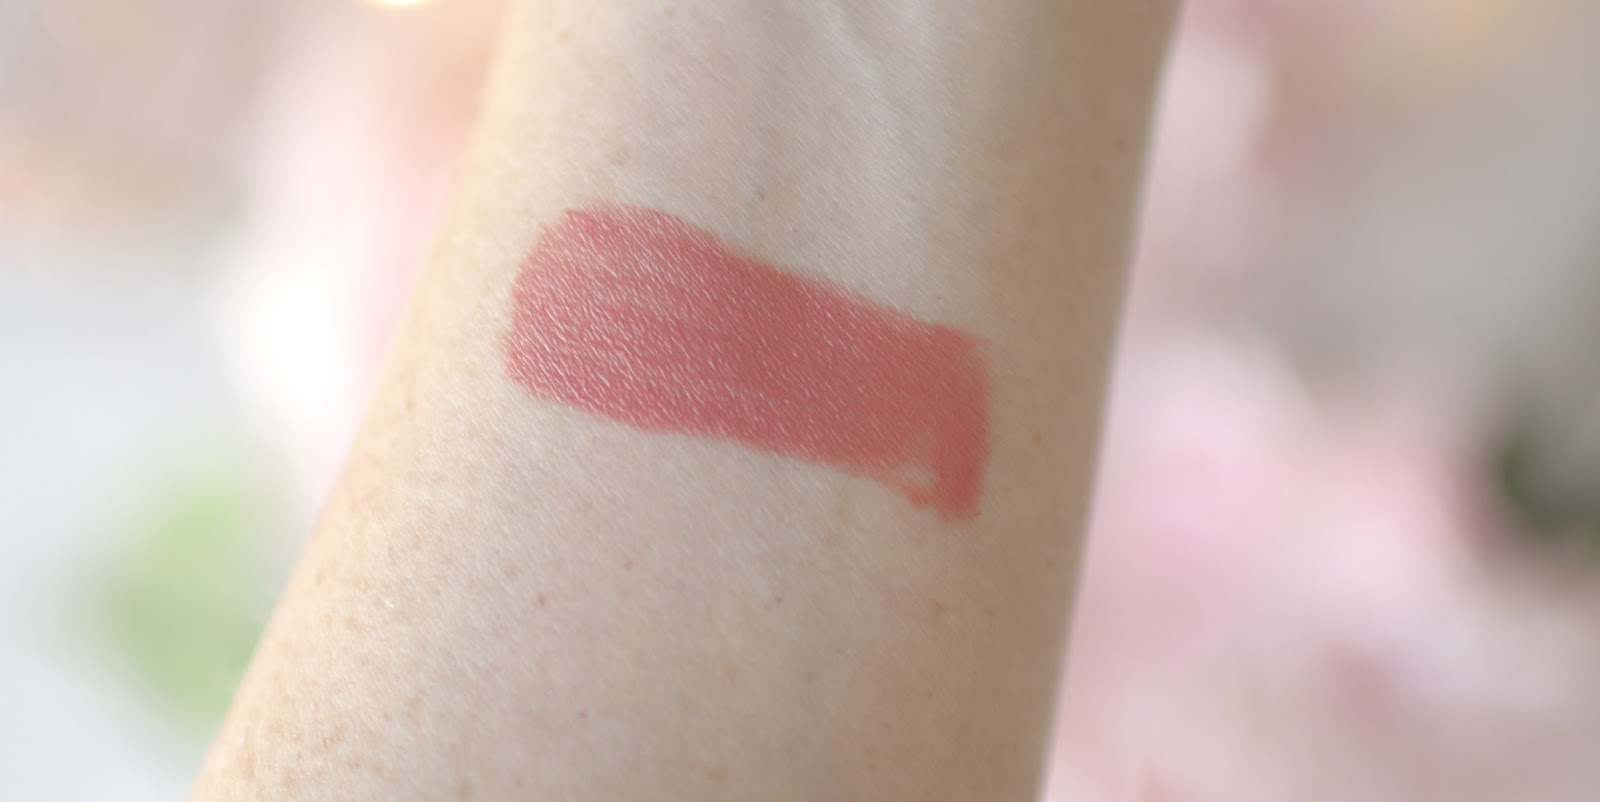 Melting Pout Matte Liquid Lipstick by Covergirl #20